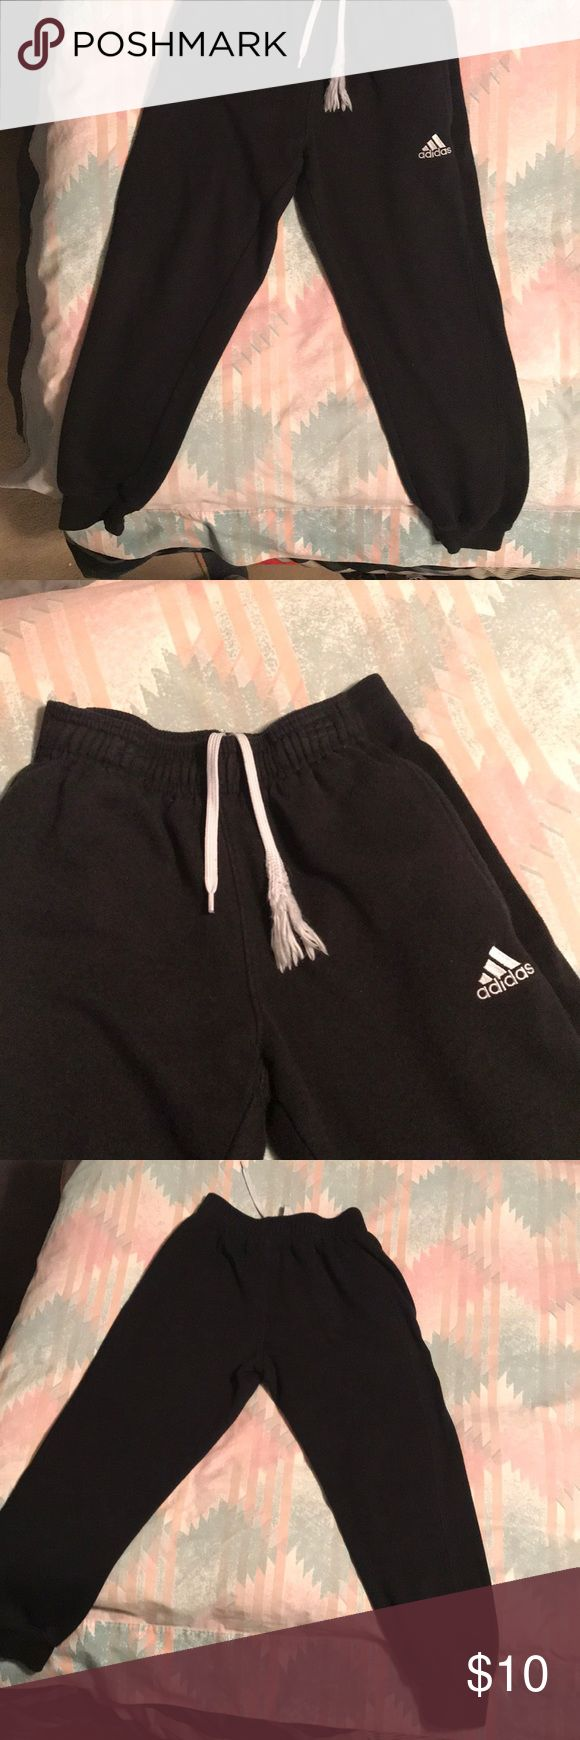 Boys black adidas joggers Boys Black Adidas Joggers. The only thing wrong with the Joggers is the string as shown in picture. Otherwise the Joggers are in great condition. adidas Bottoms Sweatpants & Joggers